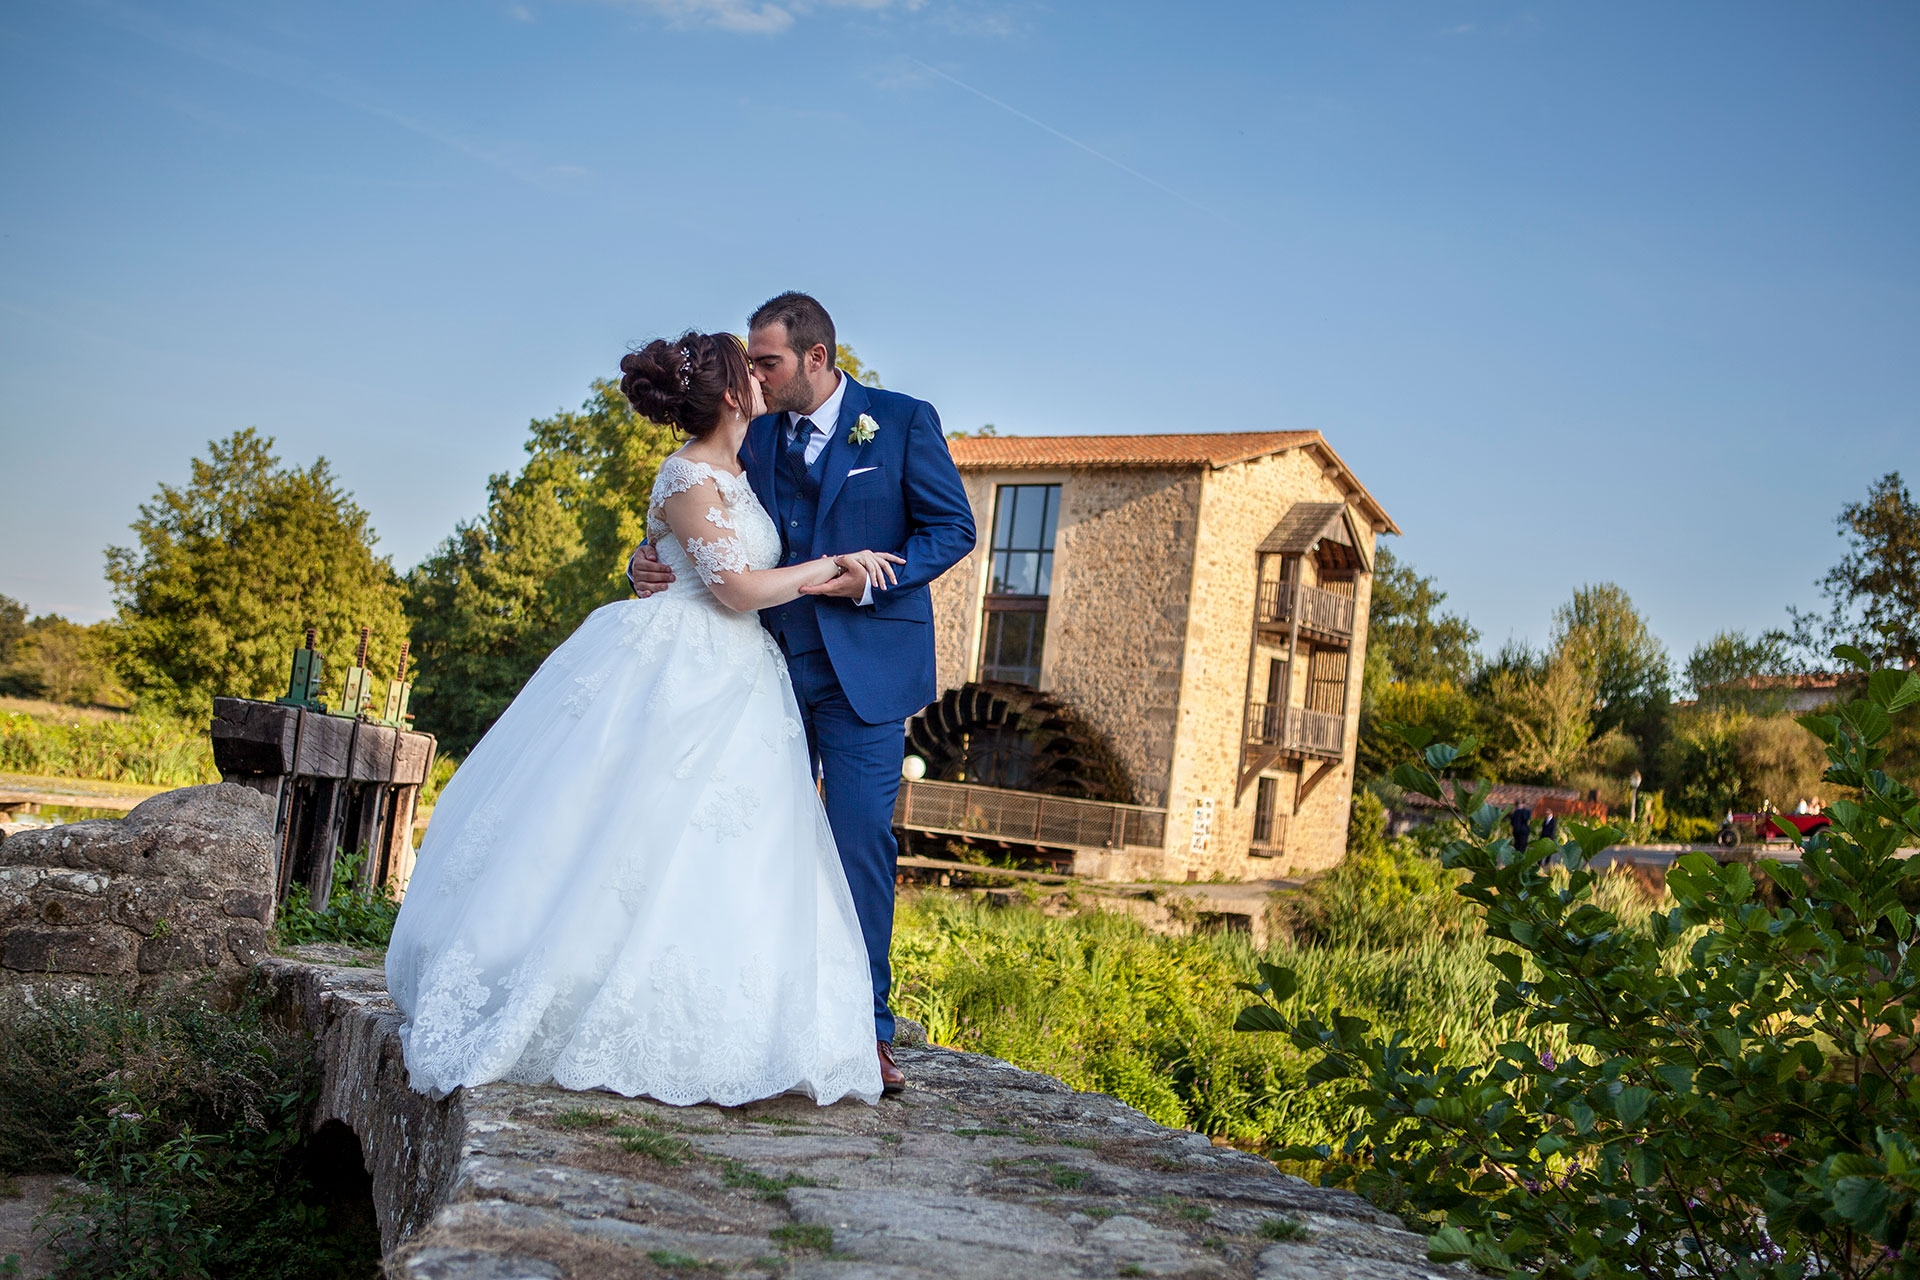 particuliers-evenements-mariage-oui-tiphaine&rudy-50